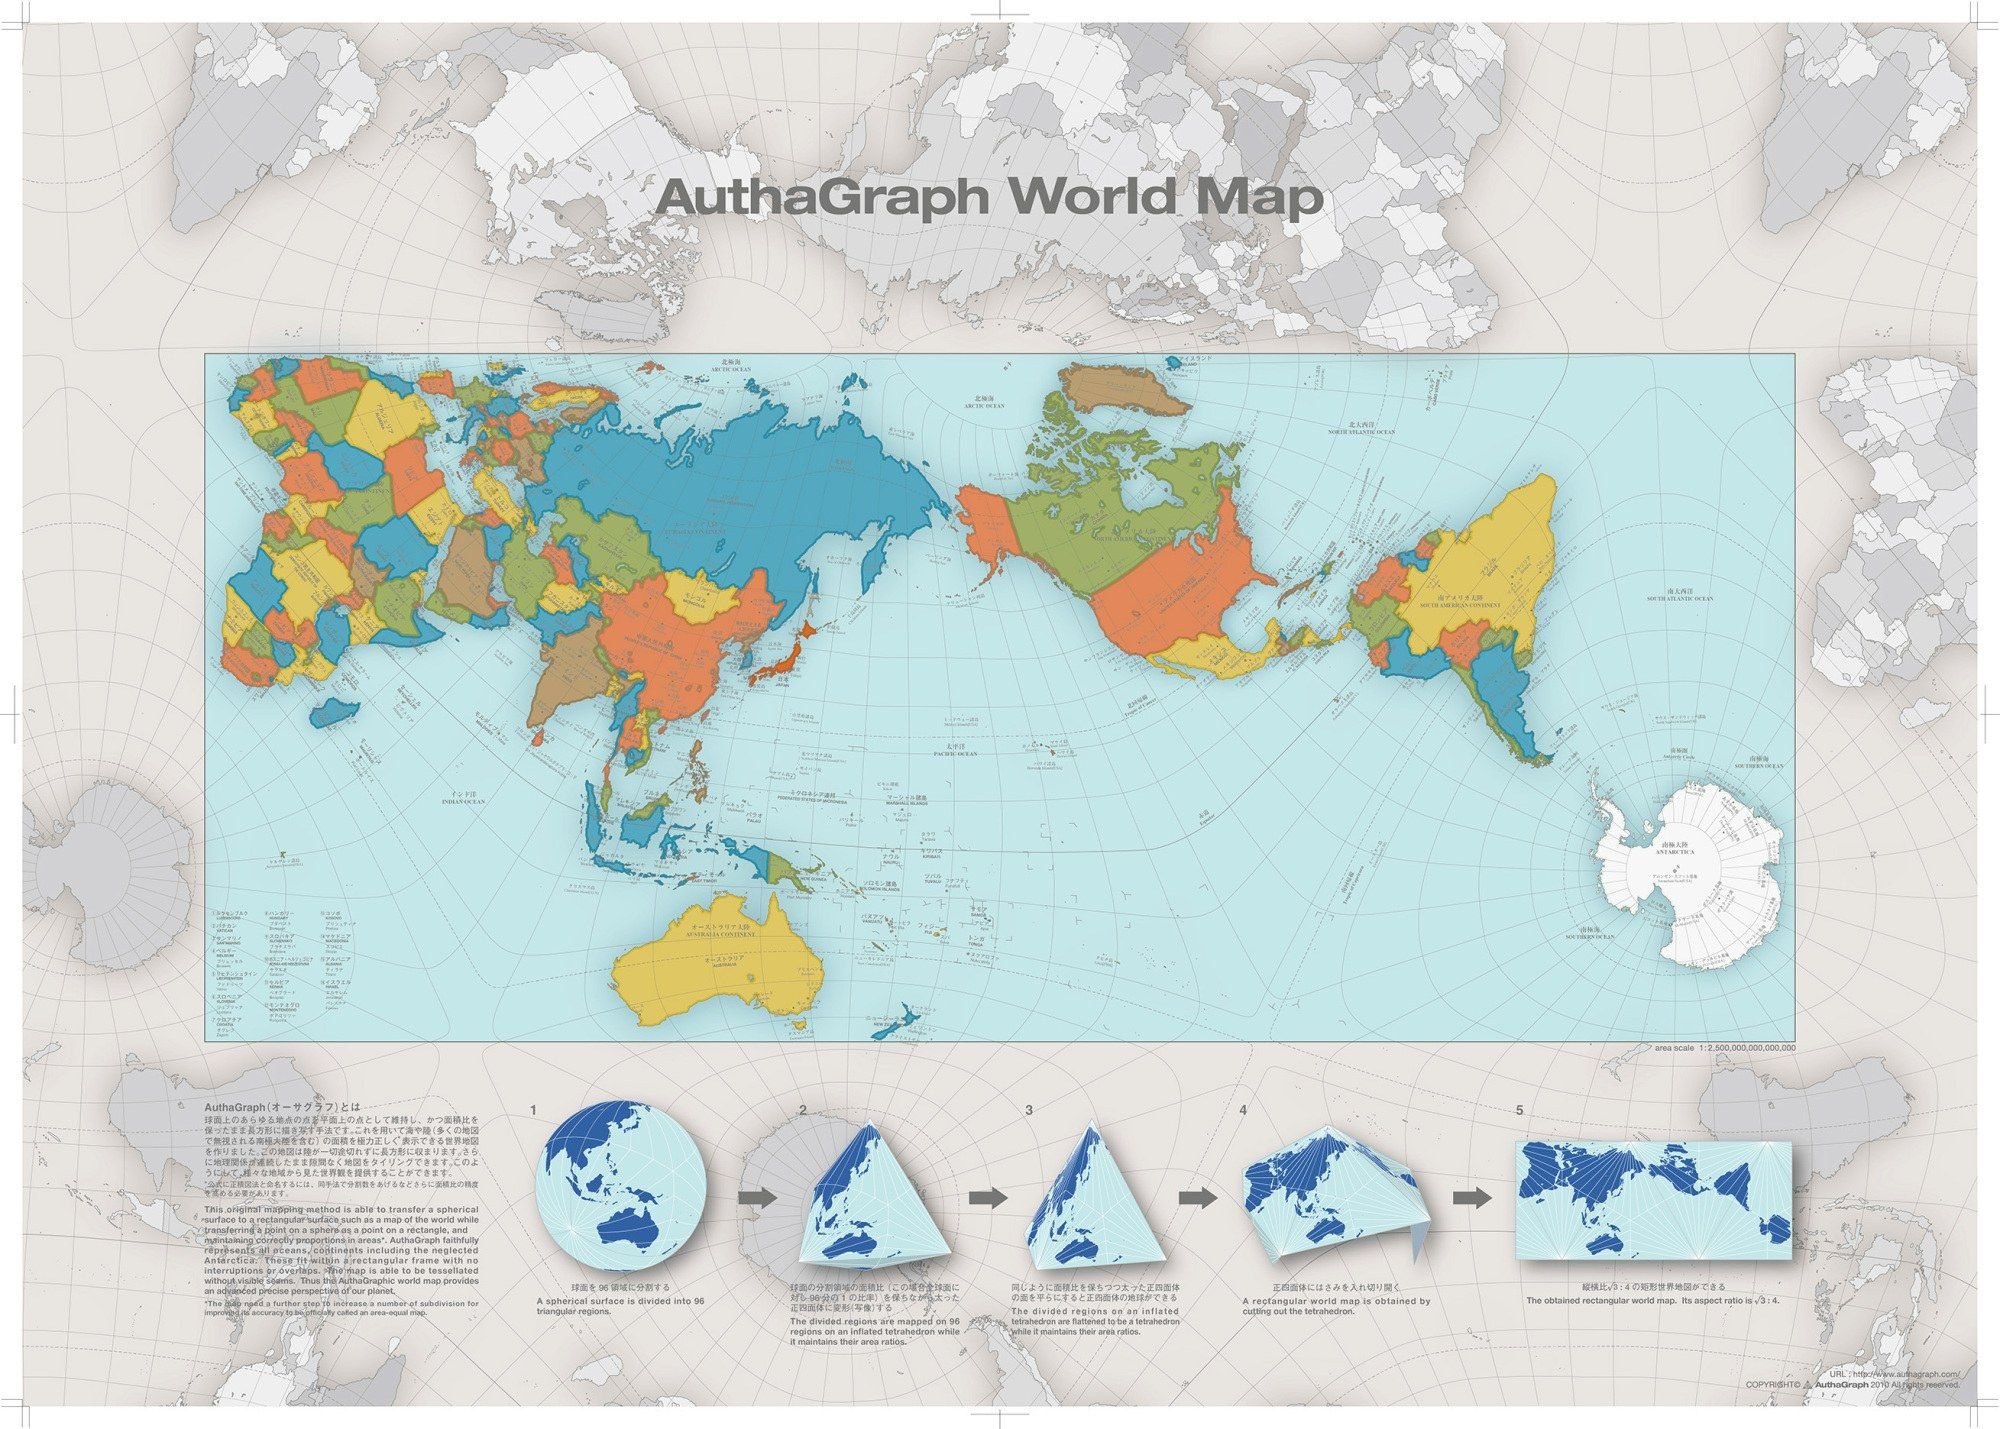 This Crazy Accurate World Map Just Won a Design Award